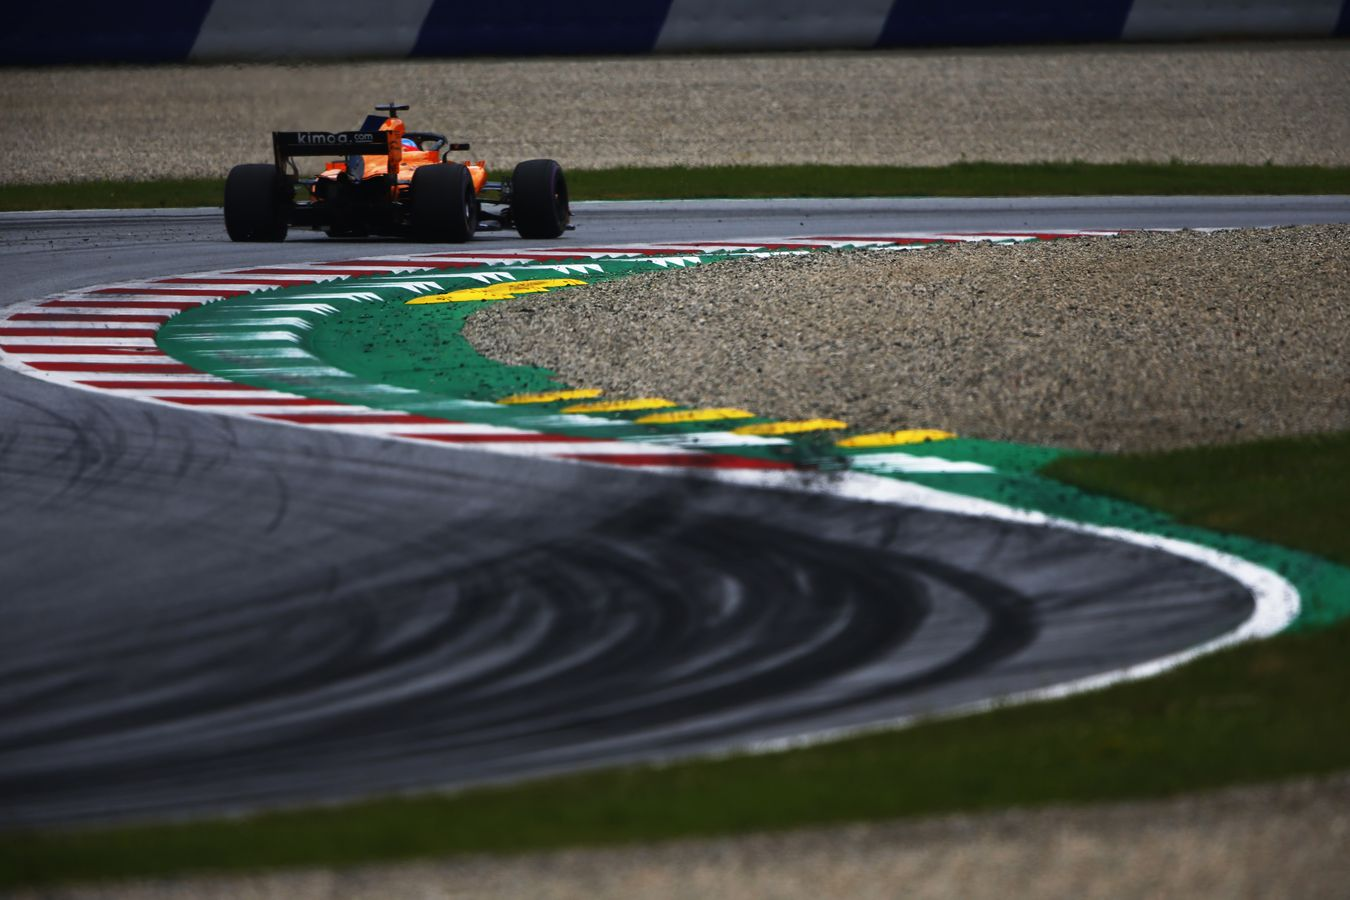 McLaren Racing - 2018 Austrian Grand Prix - Qualifying